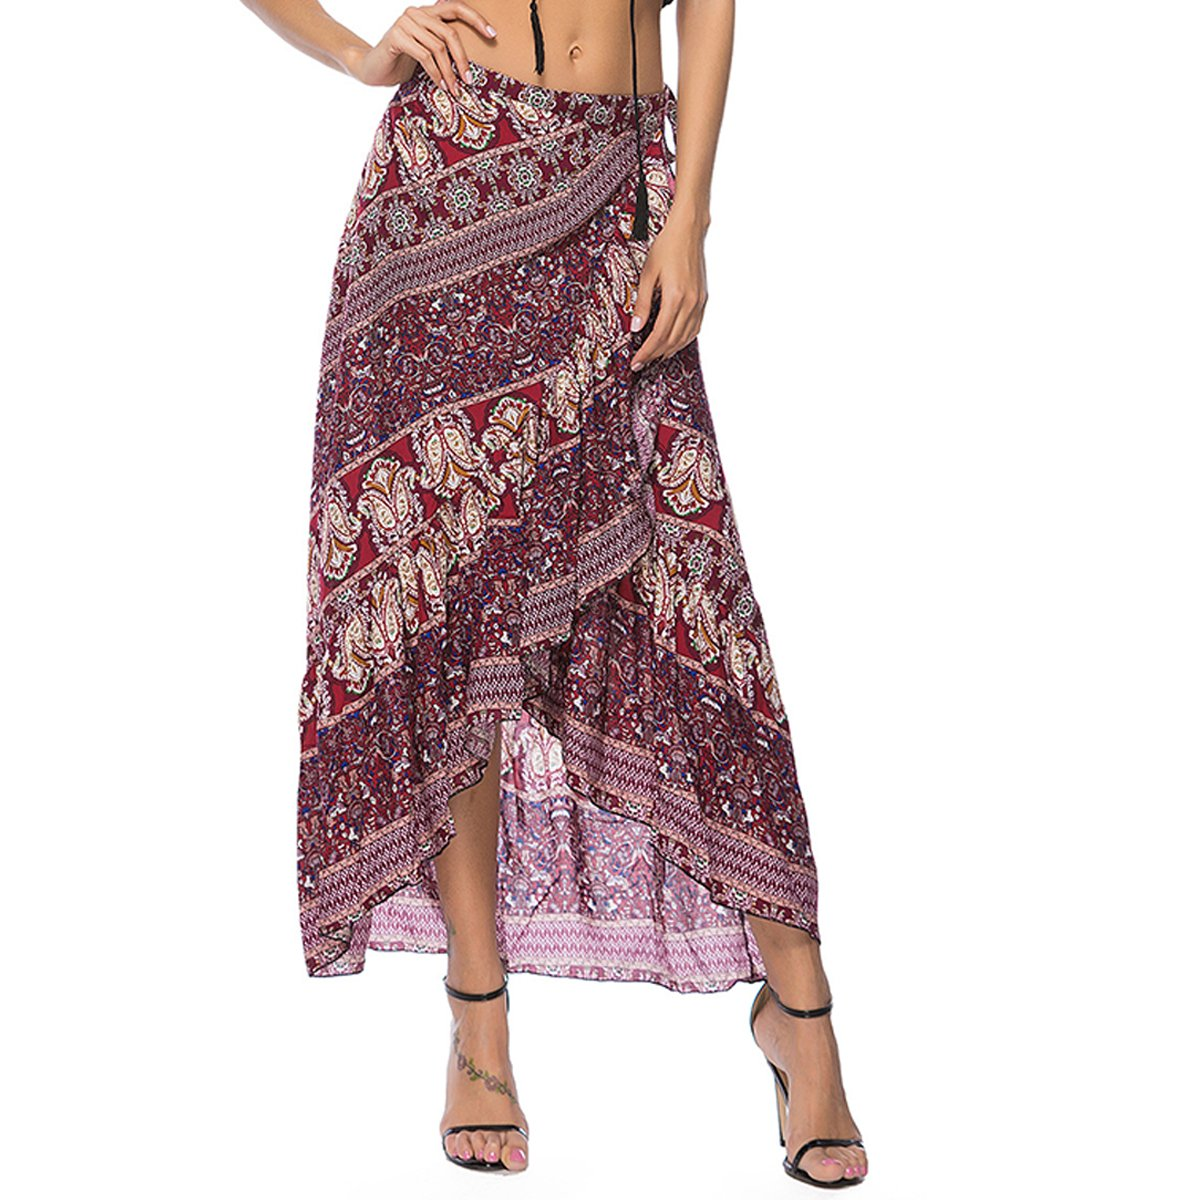 Sherry Skirt Women's Bohemian Floral Print Beach Wrap Skirt High Waist Long Maxi Skirt (Wine Red)